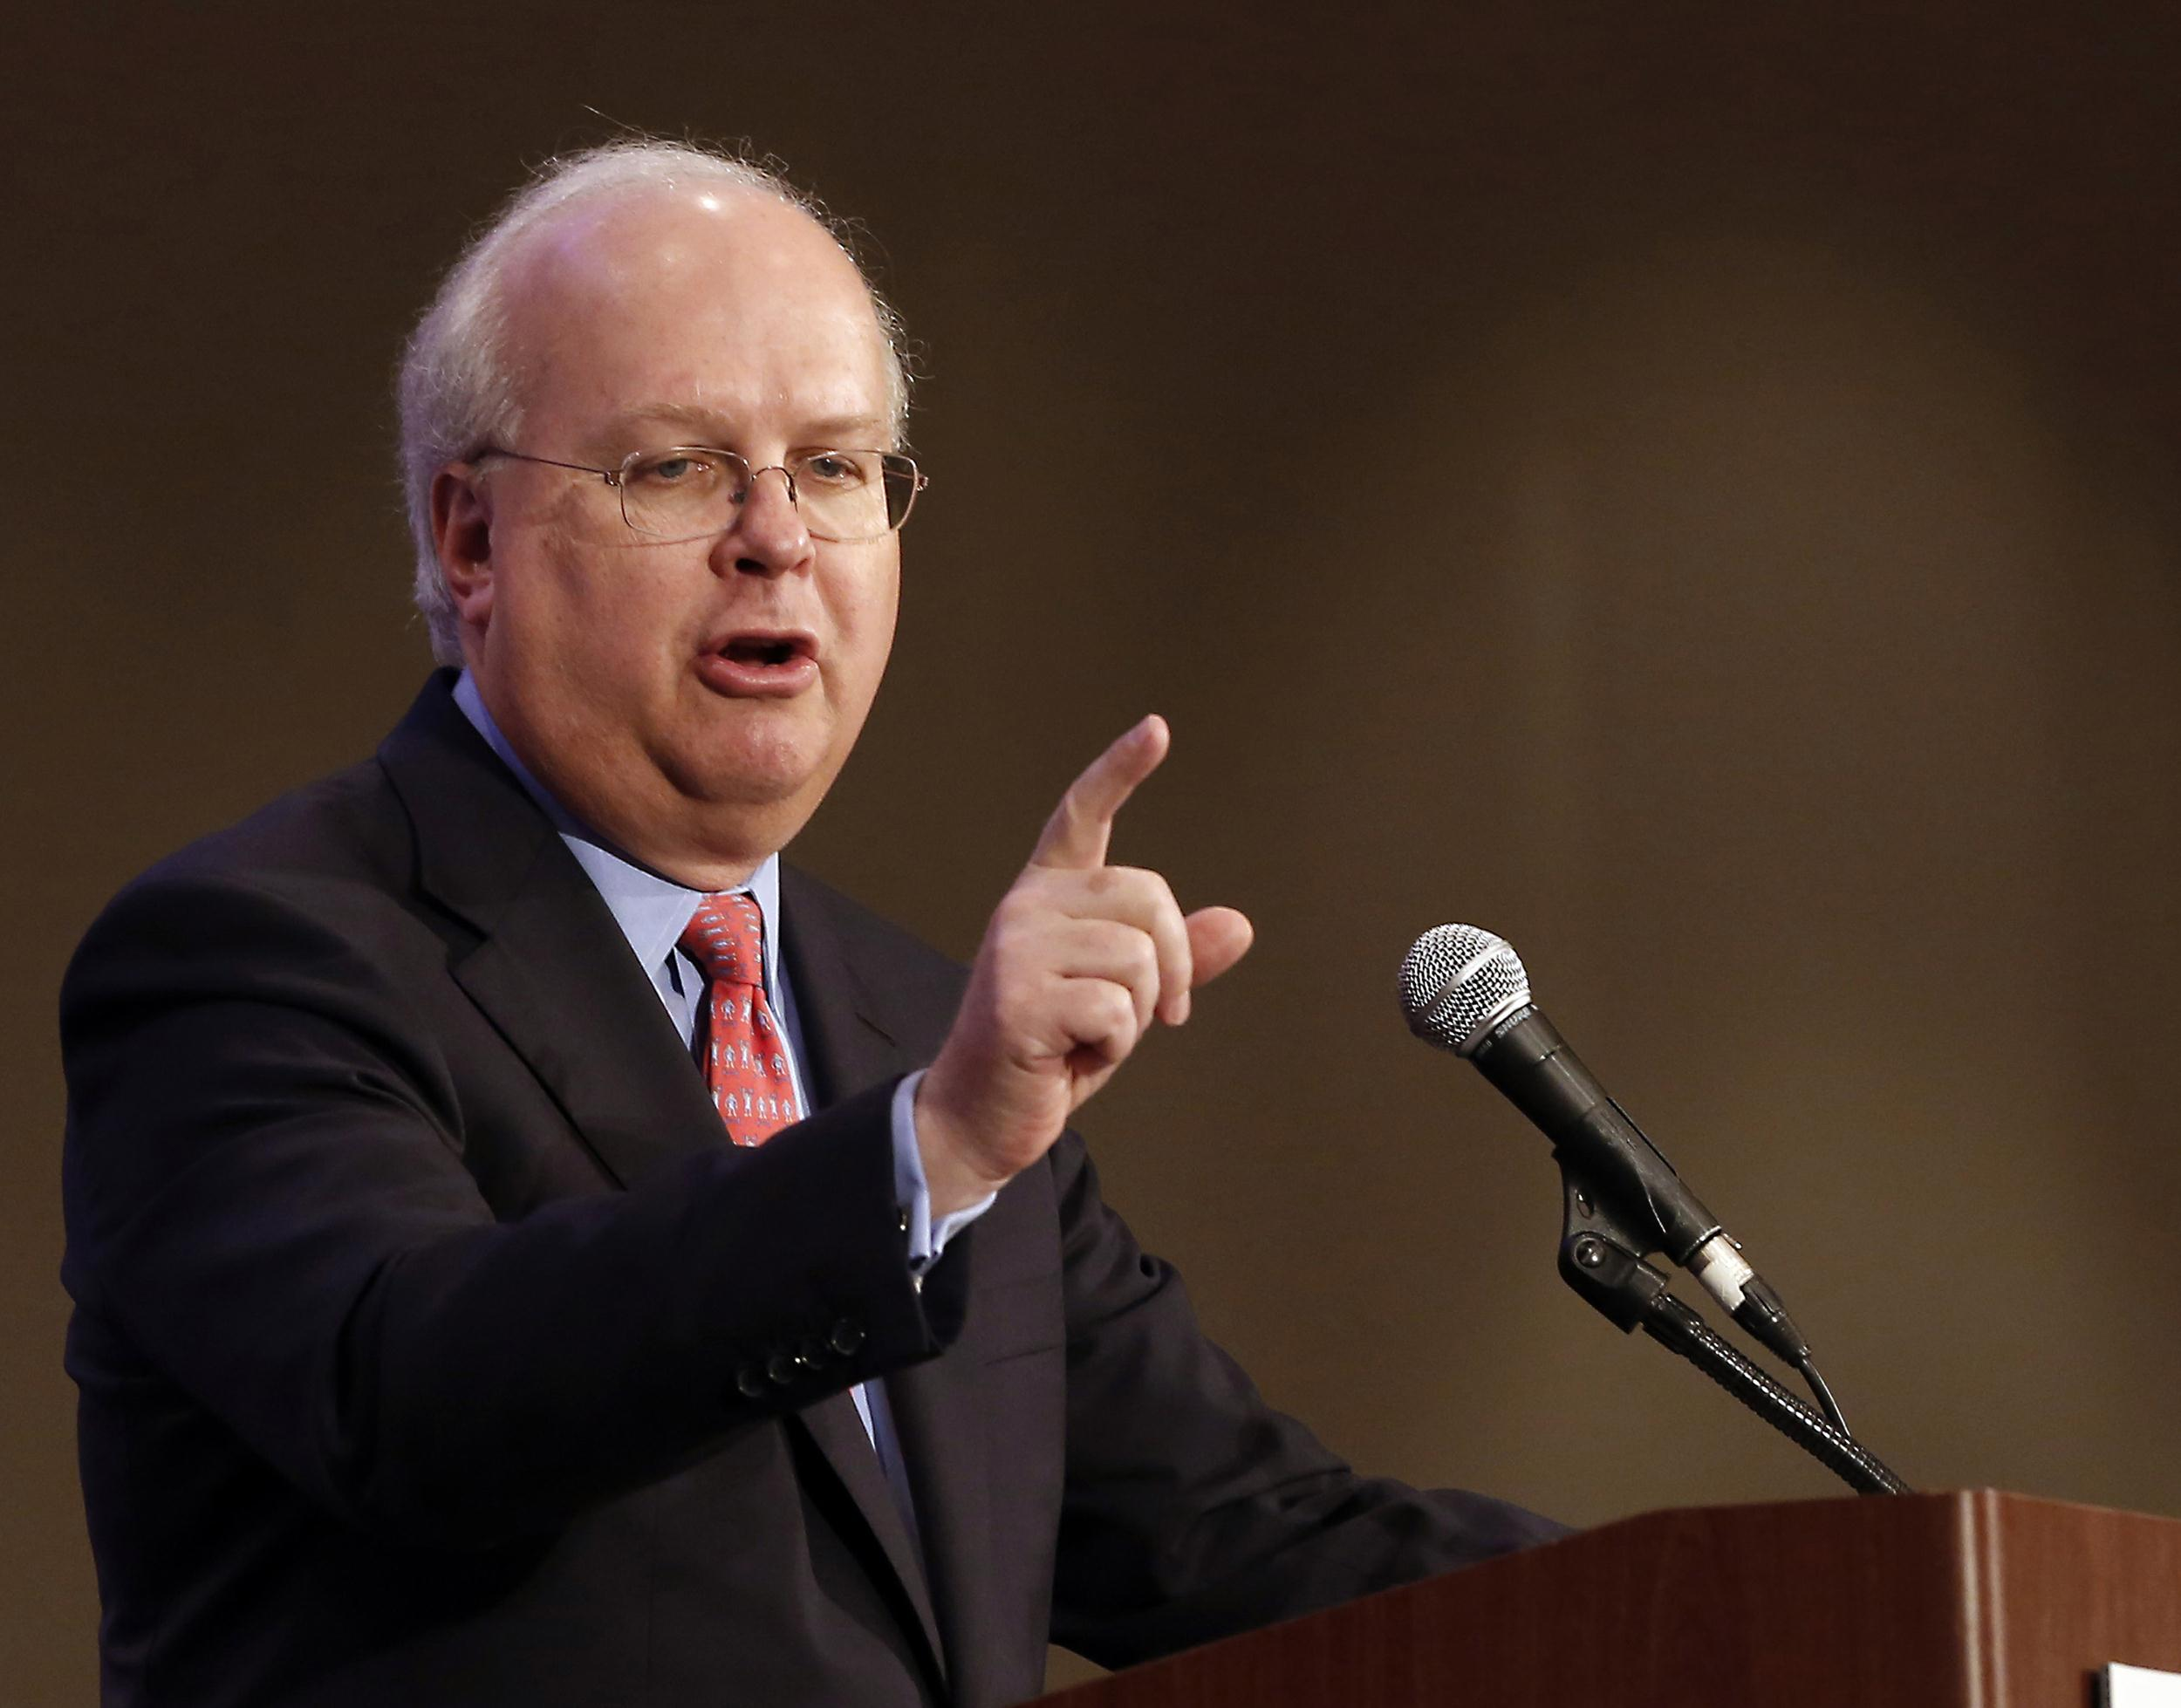 Image: Republican strategist Karl Rove speaking in Sacramento, Calif. on March 2, 2013.